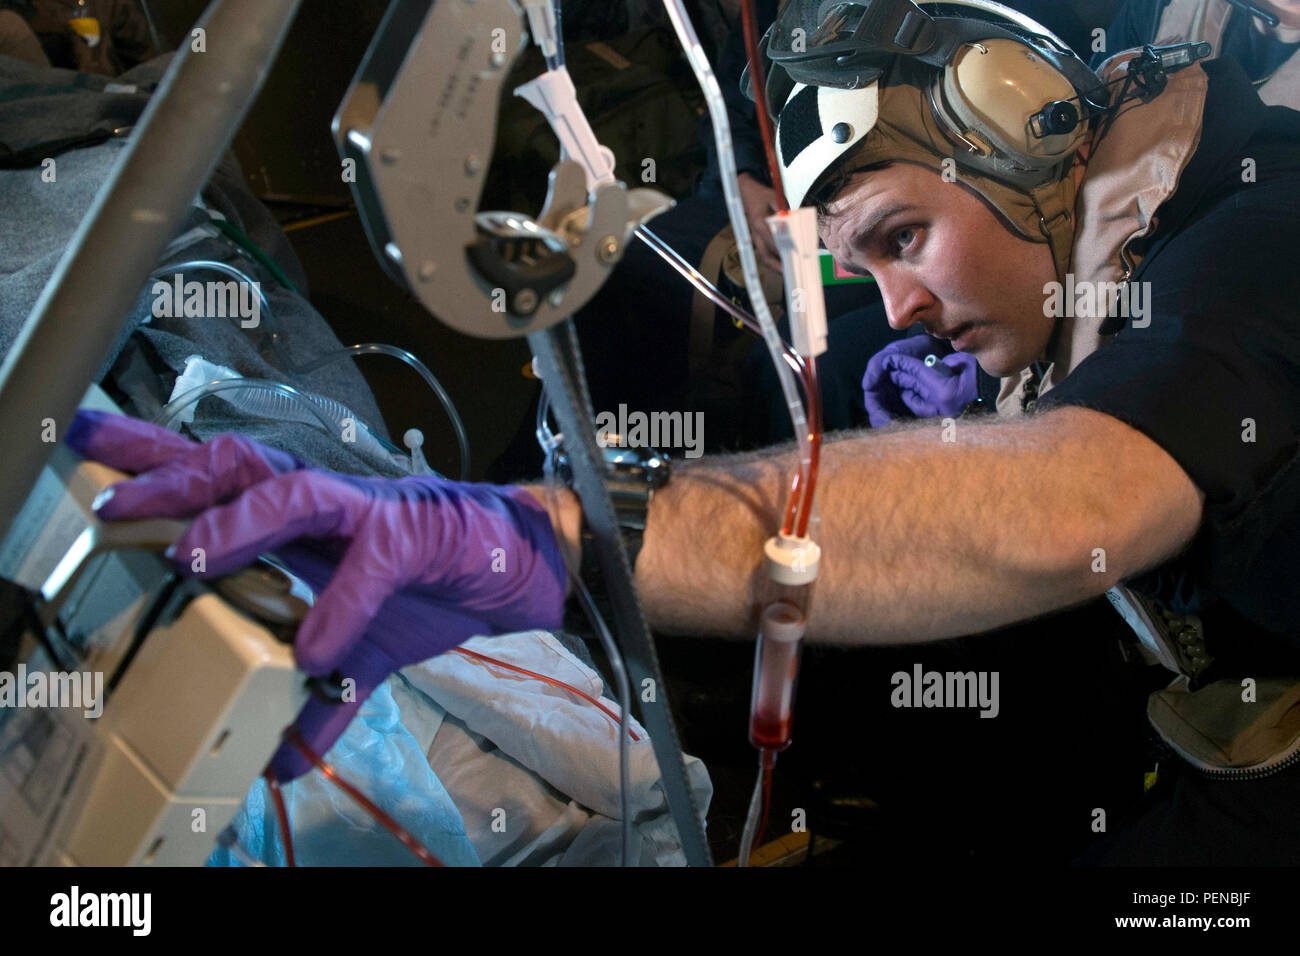 151231-N-AX638-107 ARABIAN GULF (Dec. 31, 2015) Hospital Corpsman 2nd Class Tracey Farris, from Arvin, Calif., an intensive care corpsman aboard USS Kearsarge attached to Fleet Surgical Team (FST) 4, monitors a patient's vital signs during a medical evacuation drill in an MV-22 Osprey. Kearsarge is the flagship for the Kearsarge Amphibious Ready Group (ARG) and, with the embarked 26th Marine Expeditionary Unit (MEU), is deployed in support of maritime security operations and theater security cooperation efforts in the U.S. 5th Fleet area of operations. (U.S. Navy photo by Mass Communication Sp - Stock Image